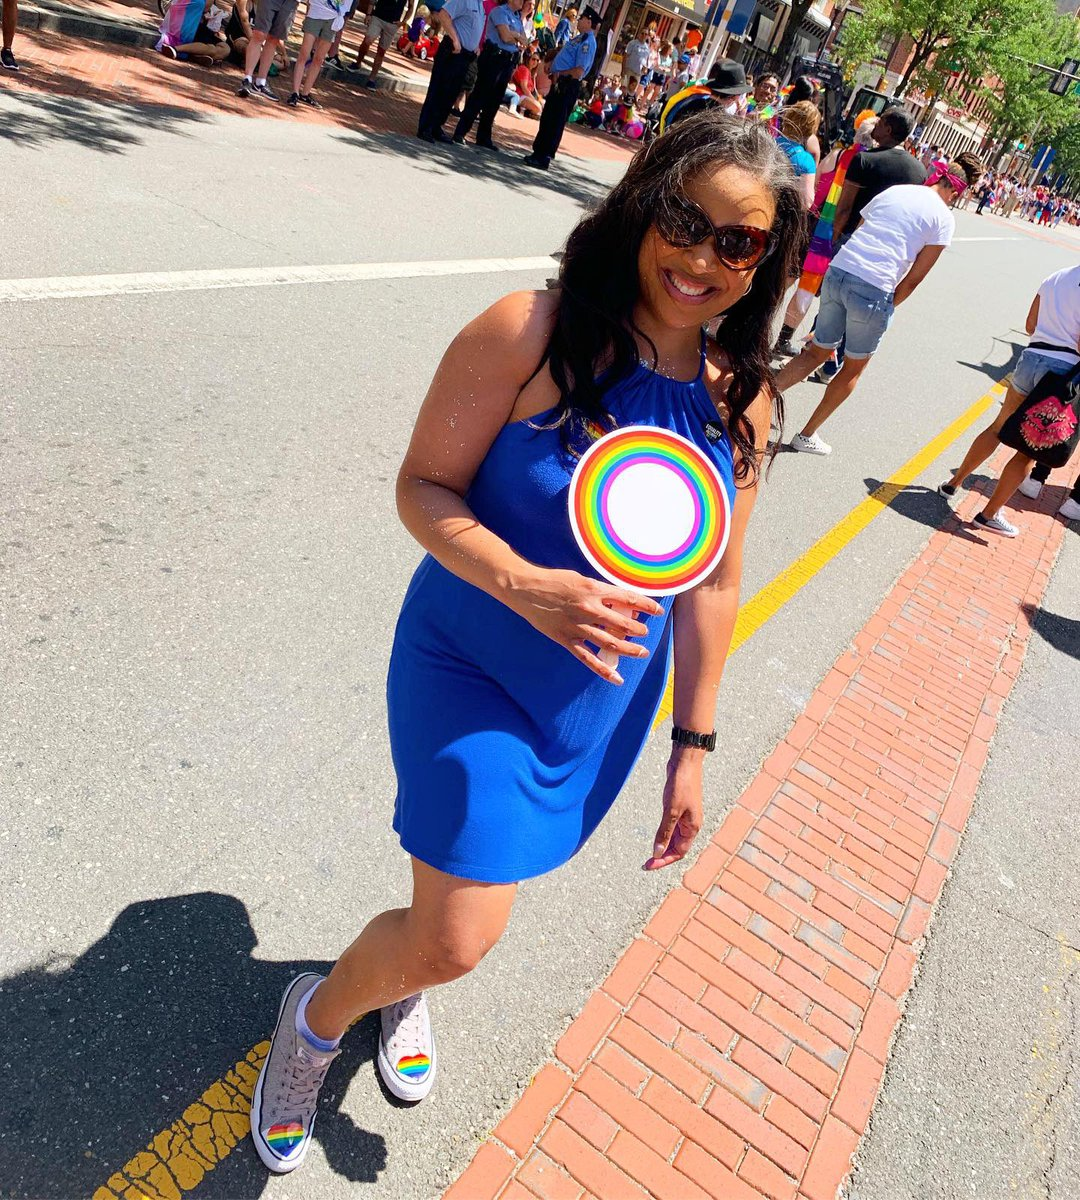 I had a great time walking in the Philly Pride Parade today. #loveislove #proudally